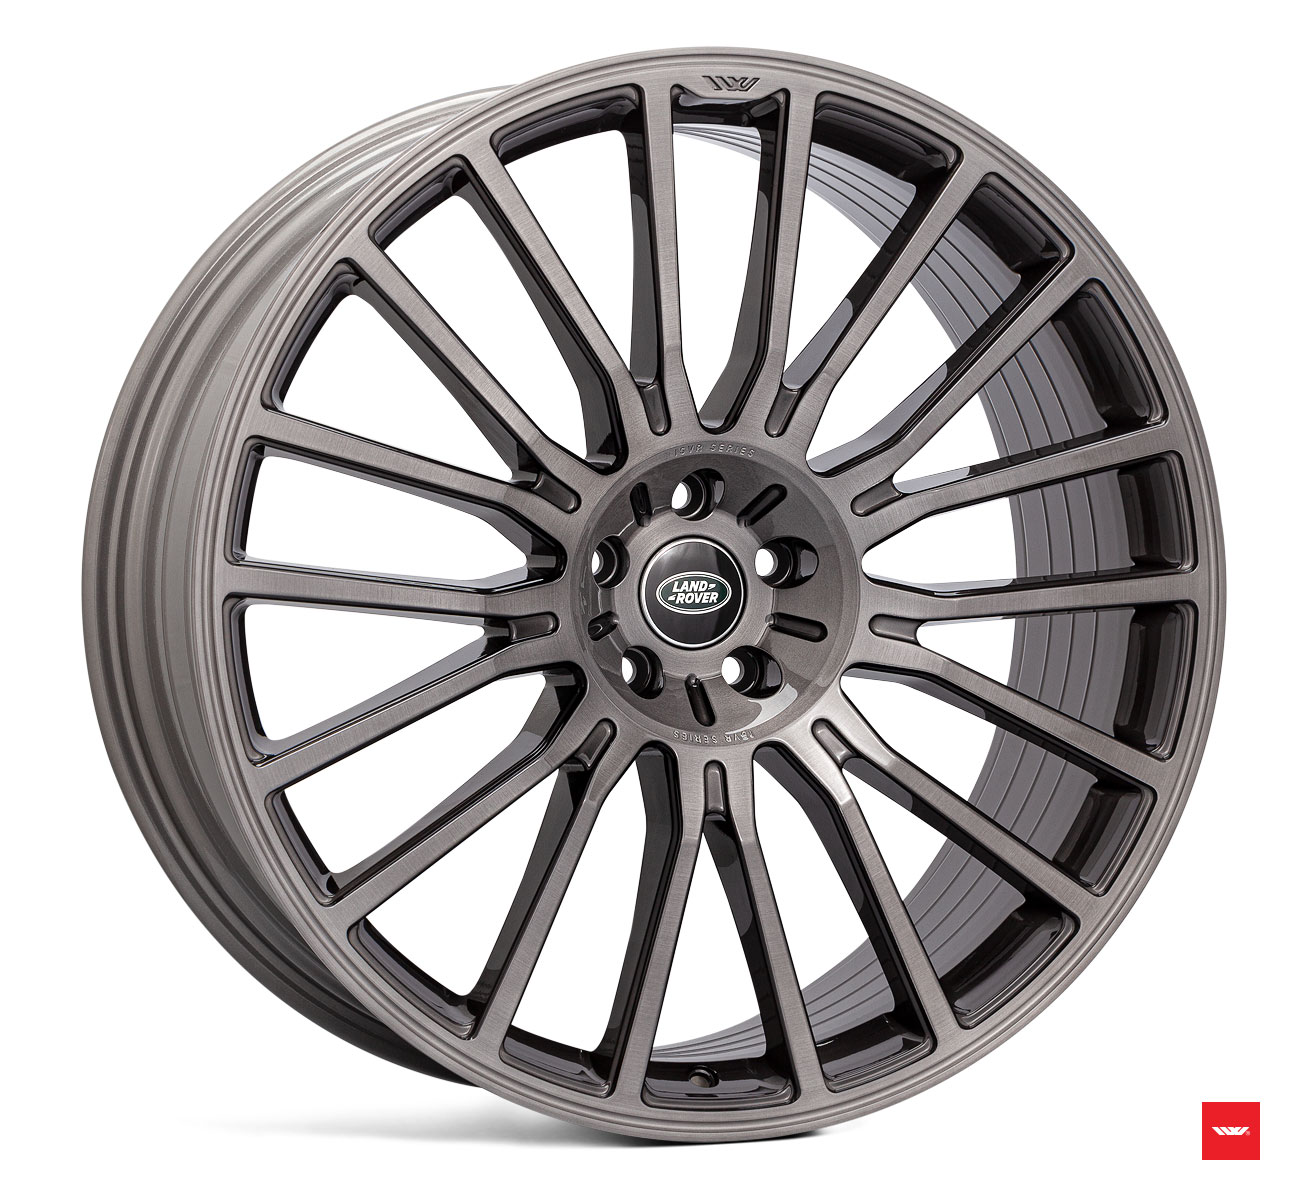 "NEW 22"" ISPIRI ISVR1 MULTISPOKE ALLOY WHEELS IN CARBON GREY BRUSHED"